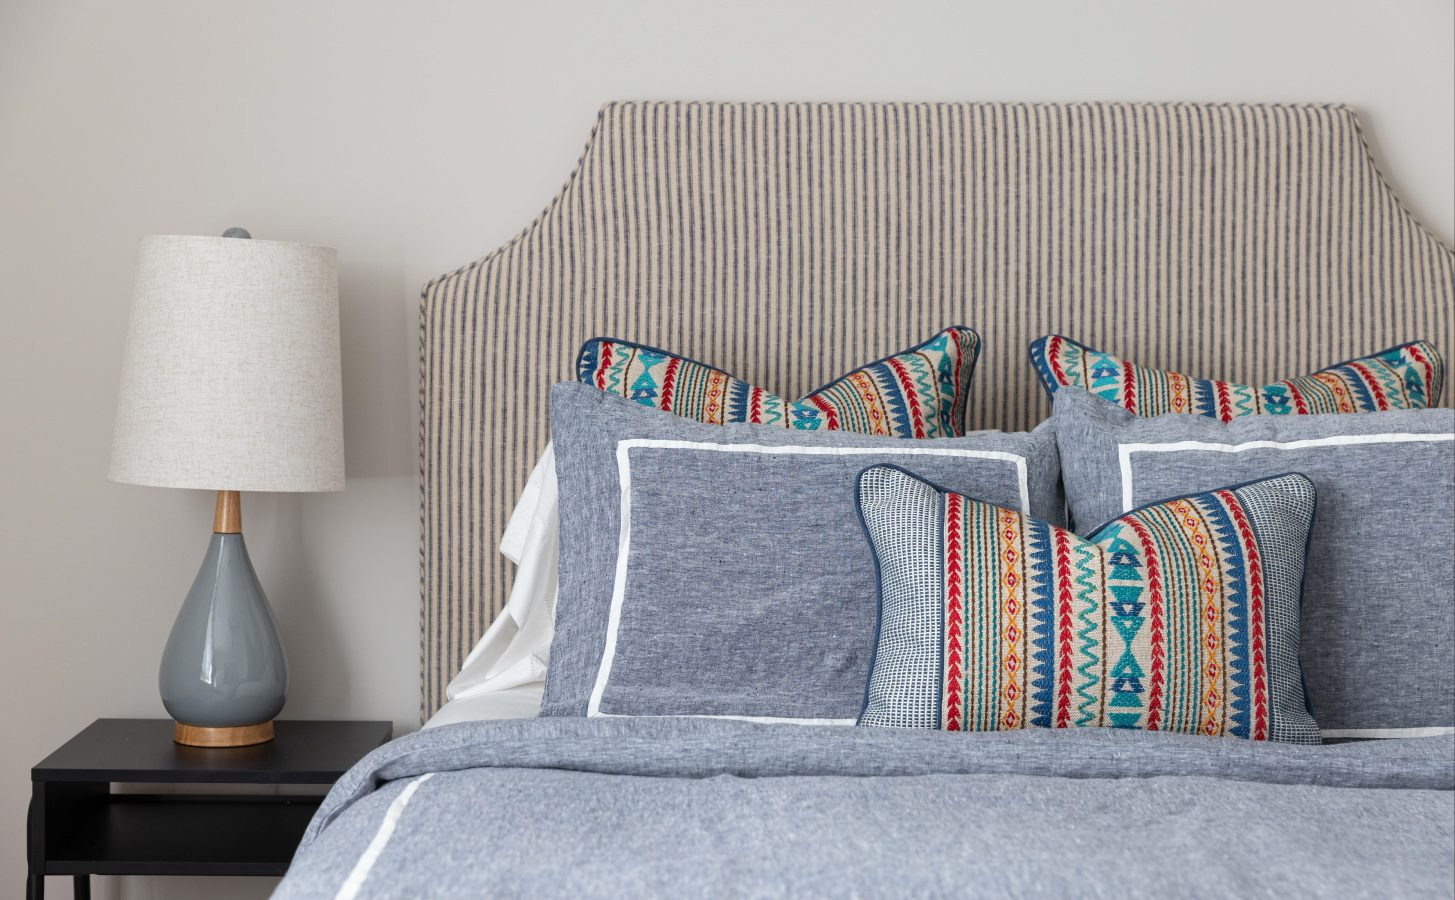 View of bed with grey sheets and colourful decorative pillows, beside side table with lamp